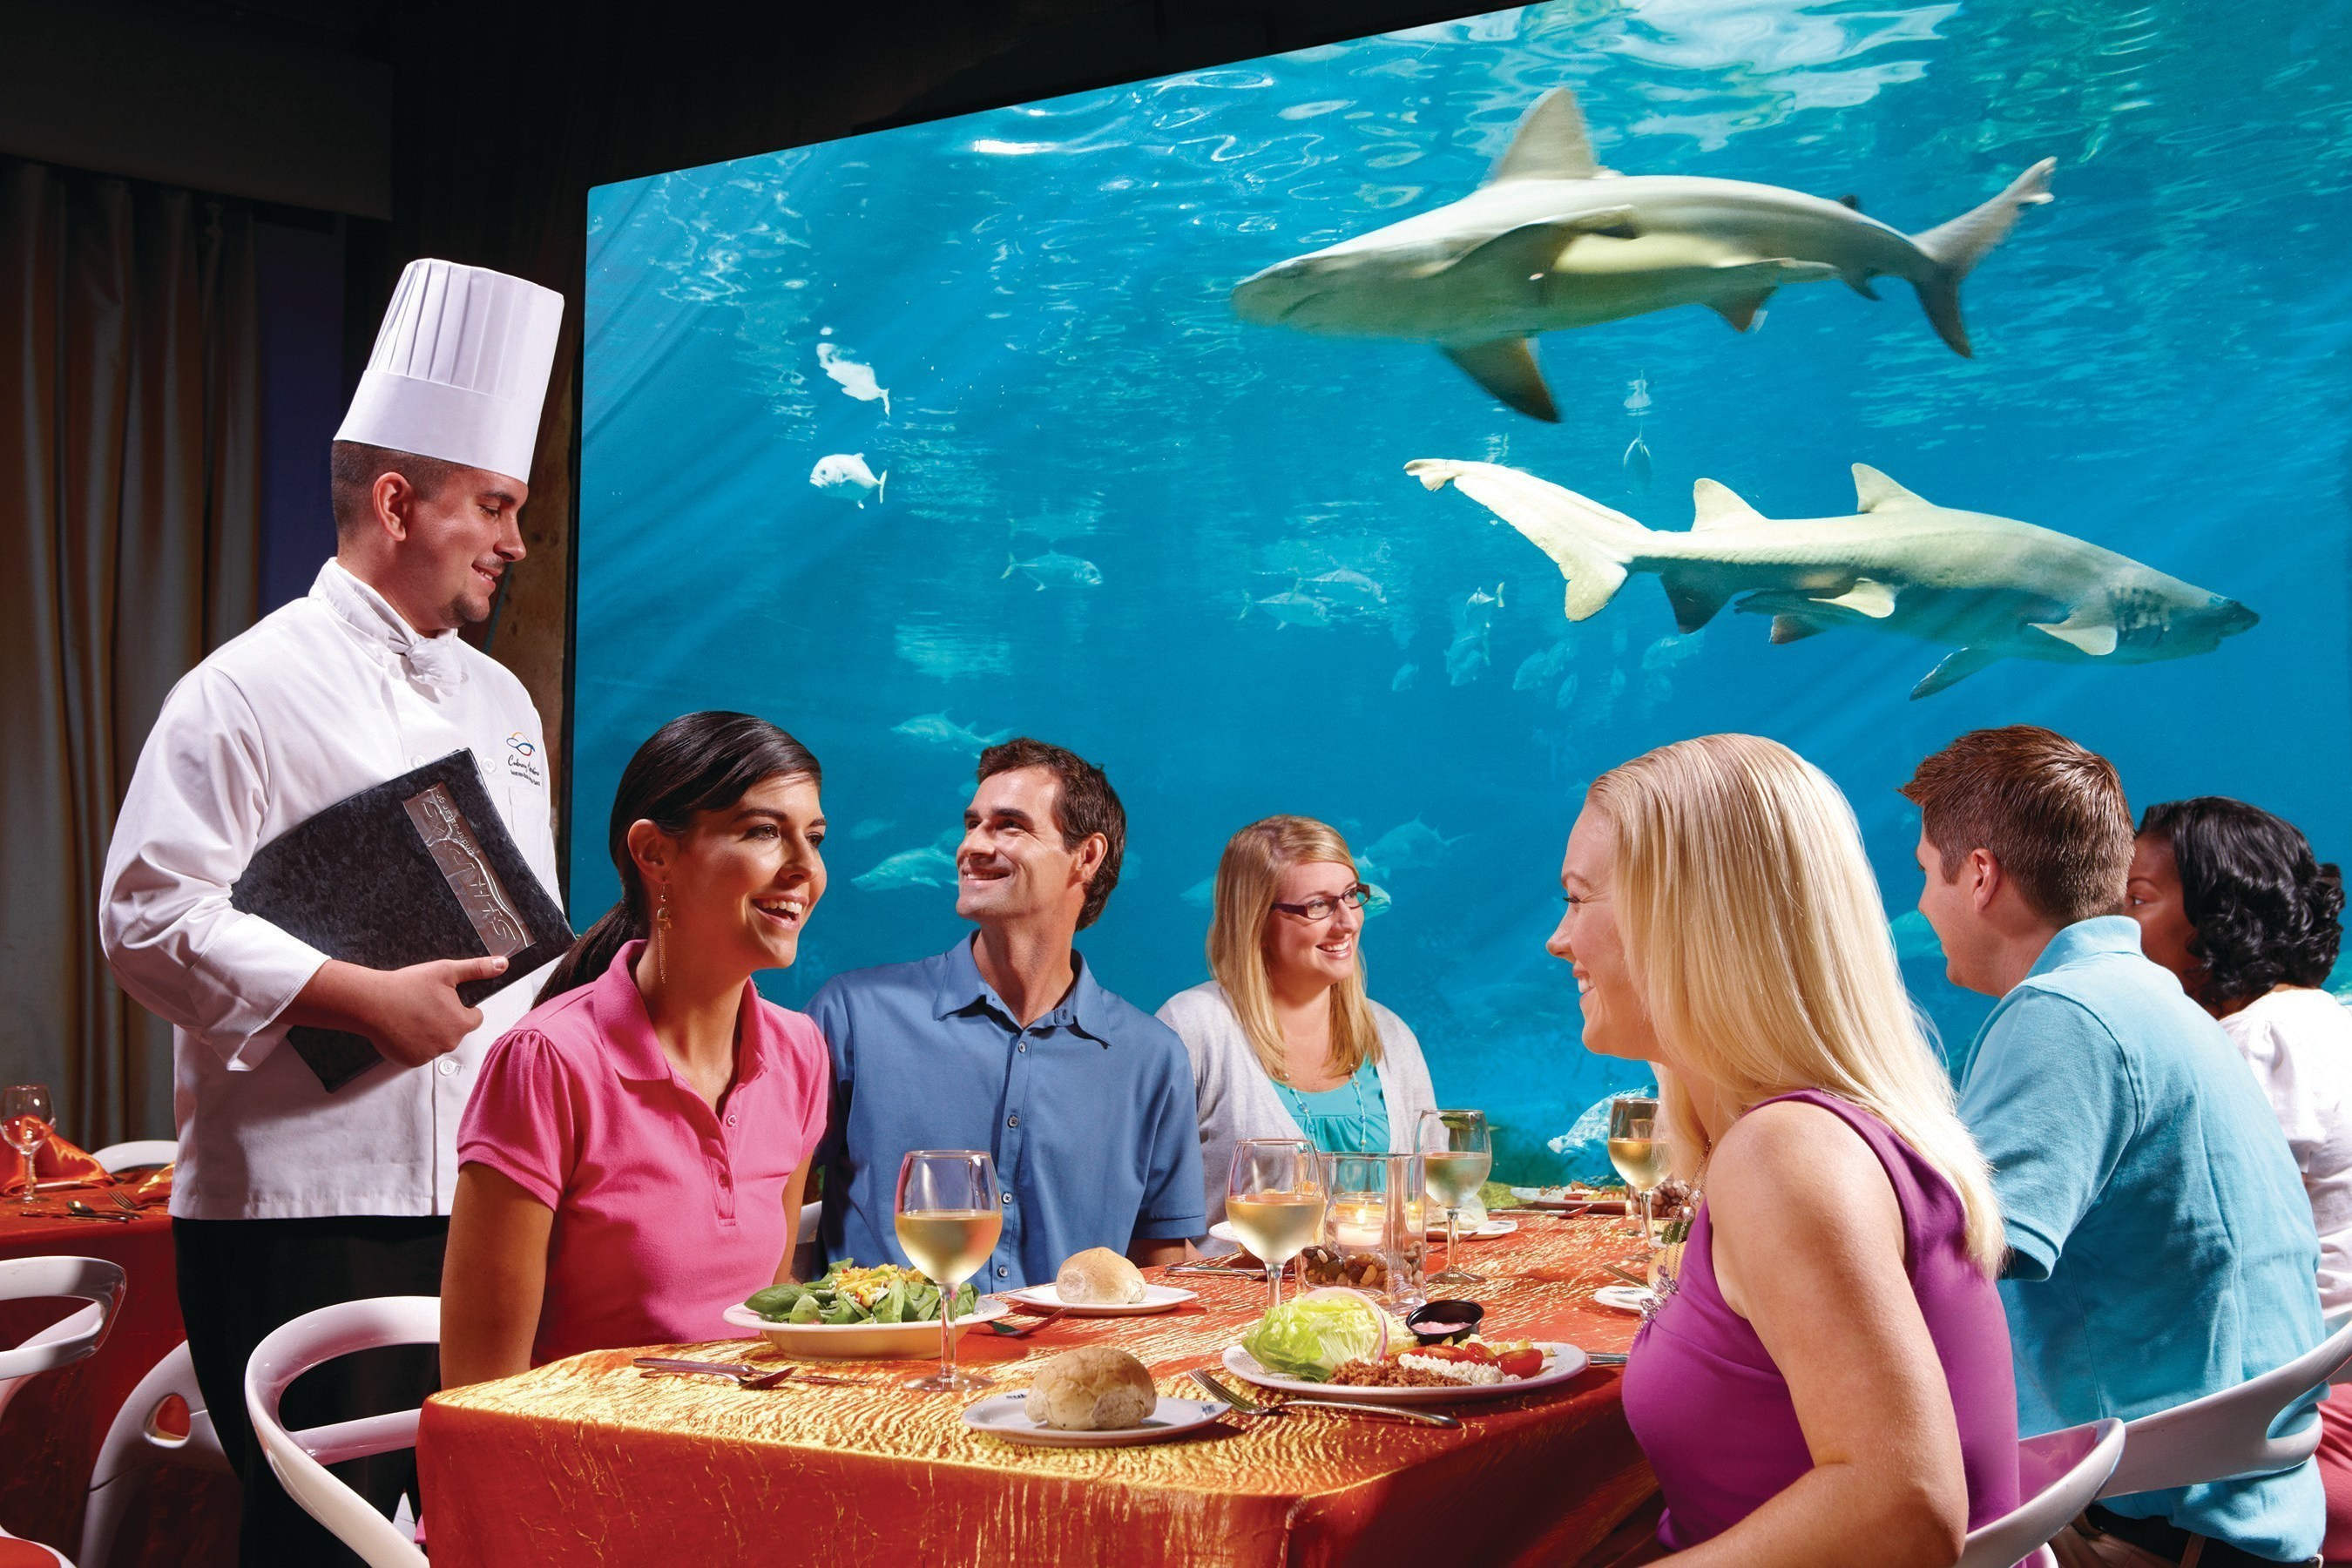 SeaWorld Parks & Entertainment announces a new responsible food sourcing policy that will mean humanely raised and sustainably harvested food at all 12 parks, including SeaWorld, Busch Gardens and Sesame Place. The company is committed to responsibly sourcing food for guests in all park restaurants, including Sharks Underwater Grill at SeaWorld Orlando.